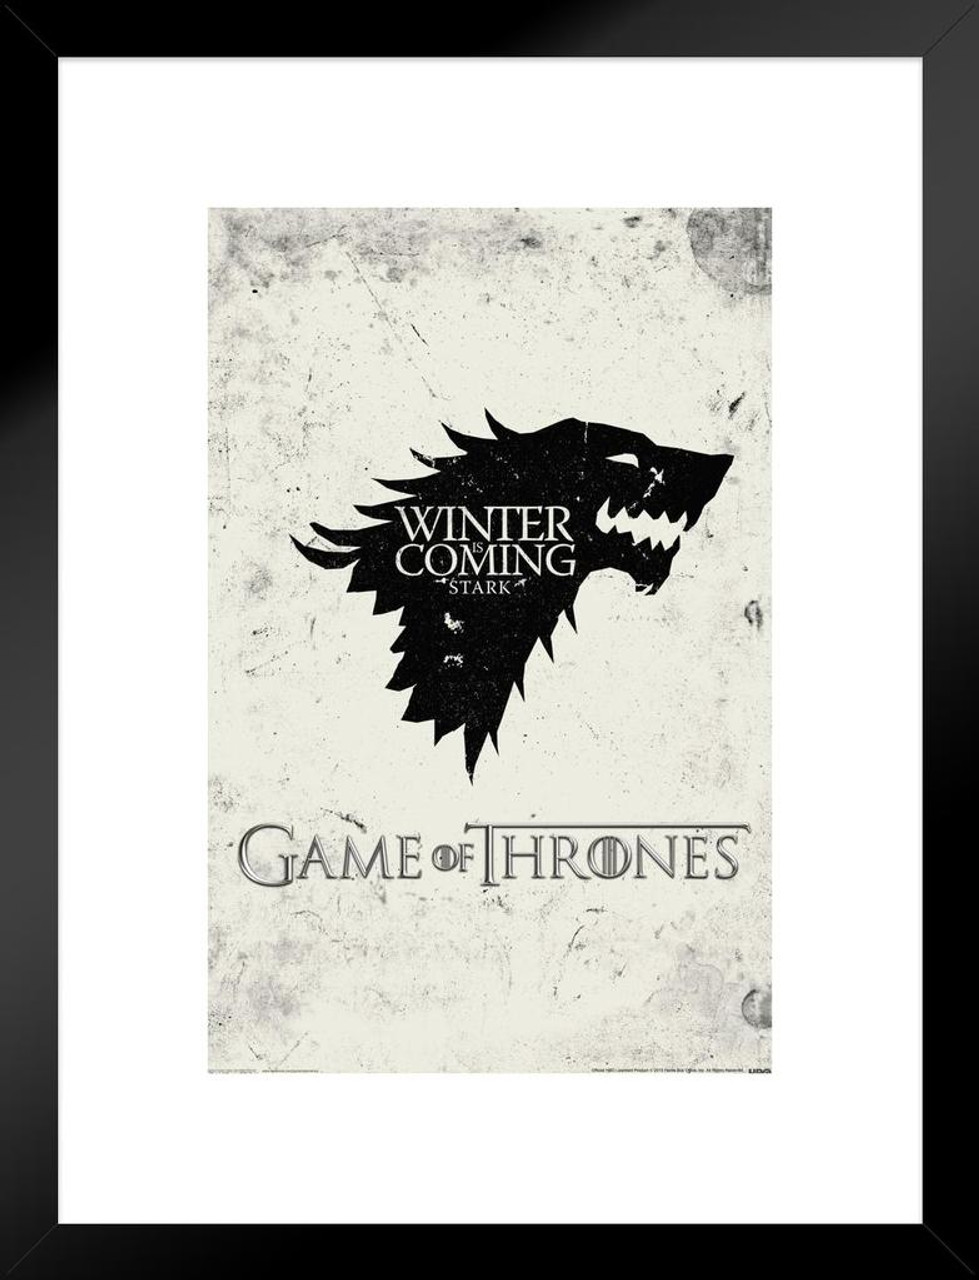 Game Of Thrones Winter Is Coming Stark HBO Medieval Fantasy TV ...